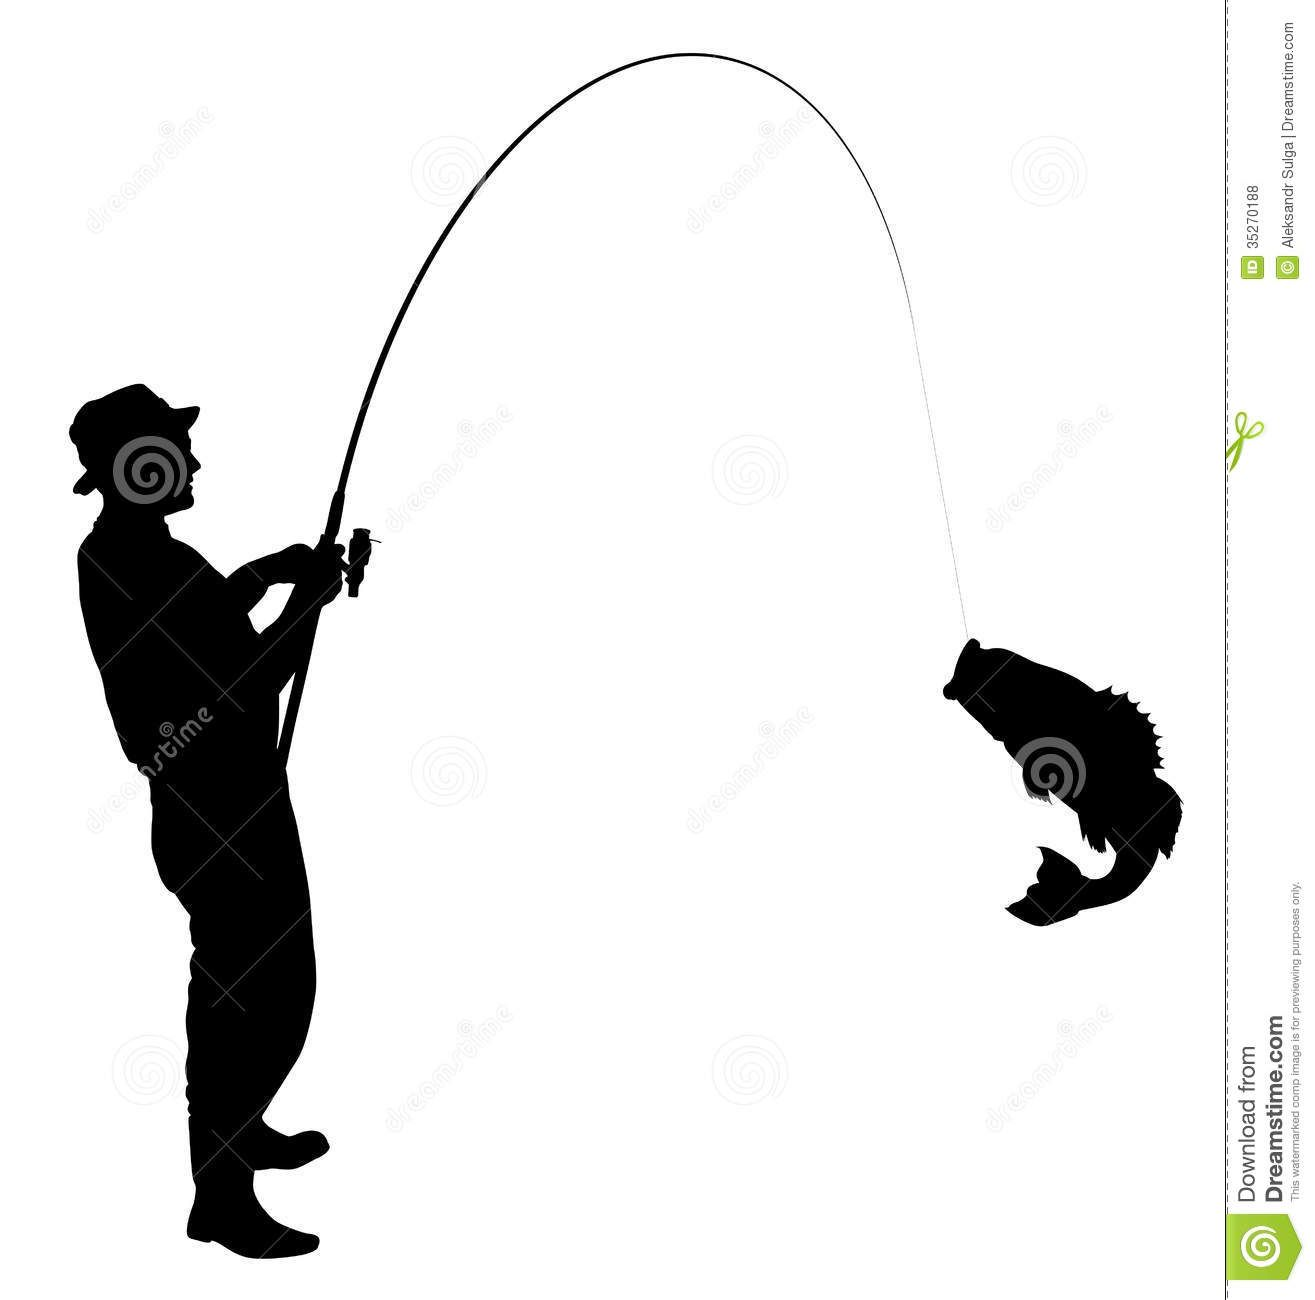 Man Fishing Silhouette Clipart Panda Free Clipart Images.